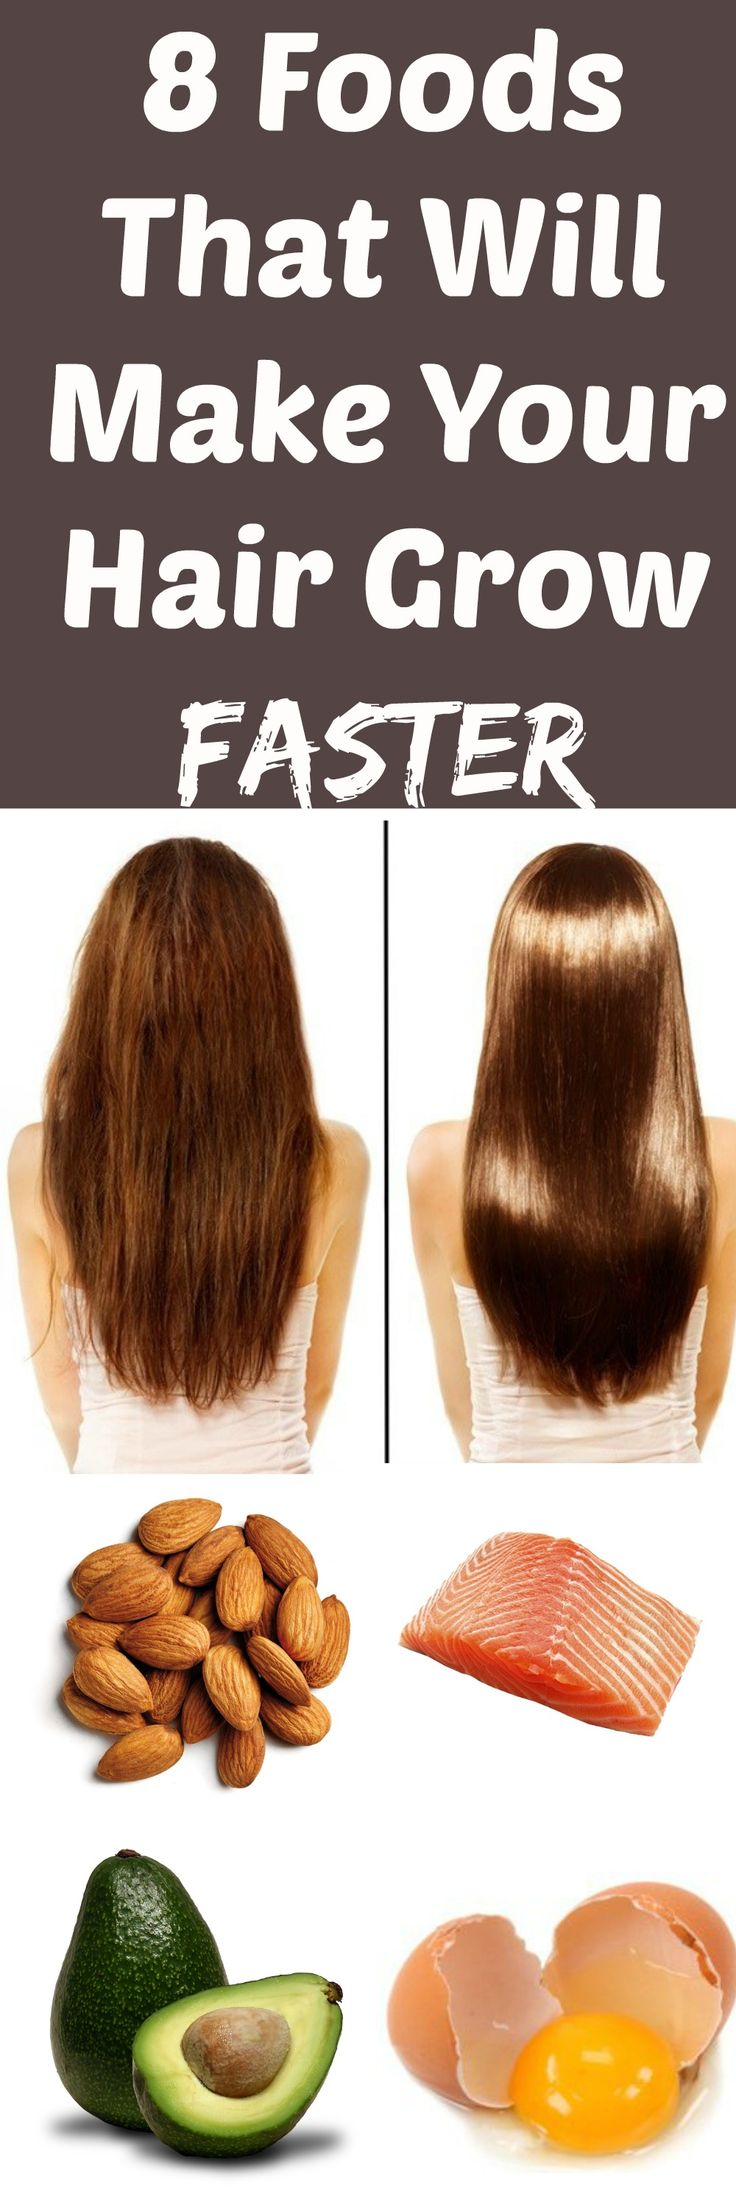 how to make your hair grow faster in 2 weeks